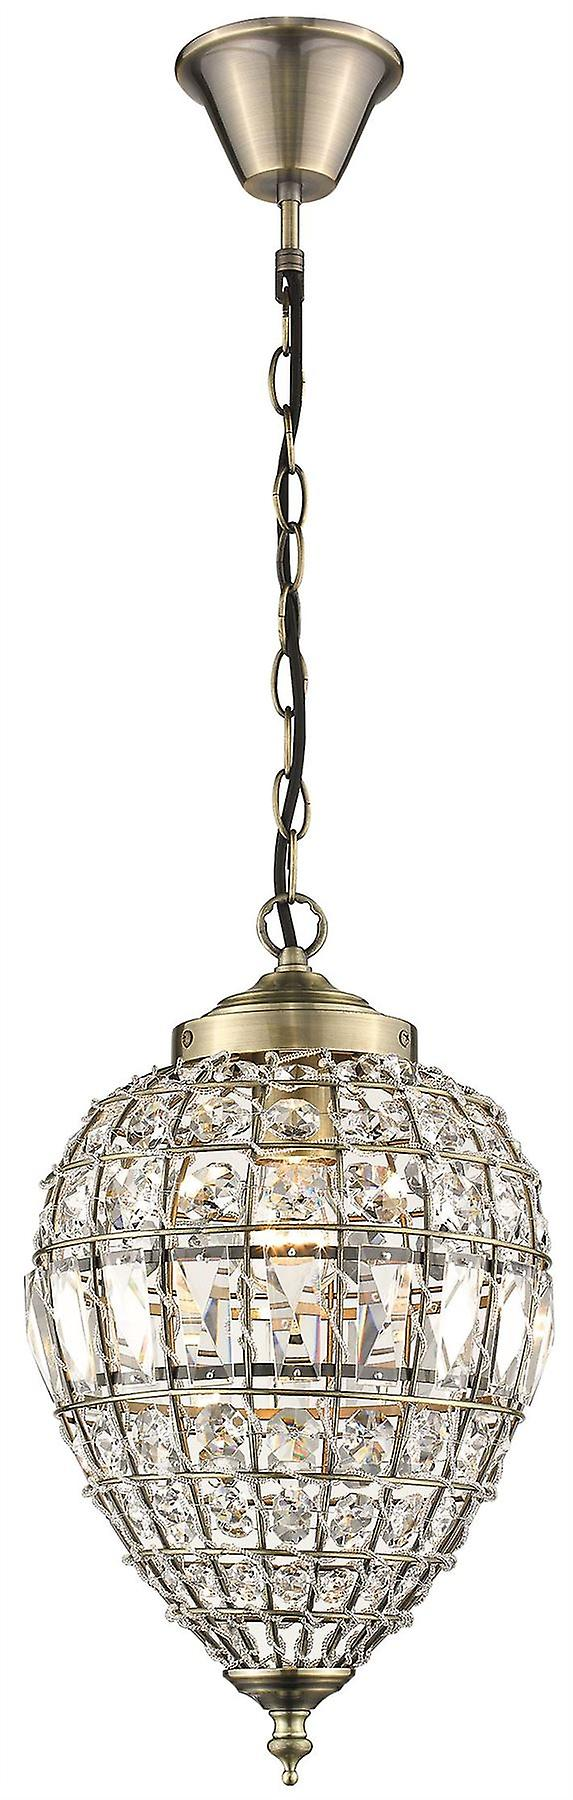 Spring Lighting - Craven Arms Small Antique Brass Drop Shaped Chandelier With Crystals  GJOD025BC1TUBU